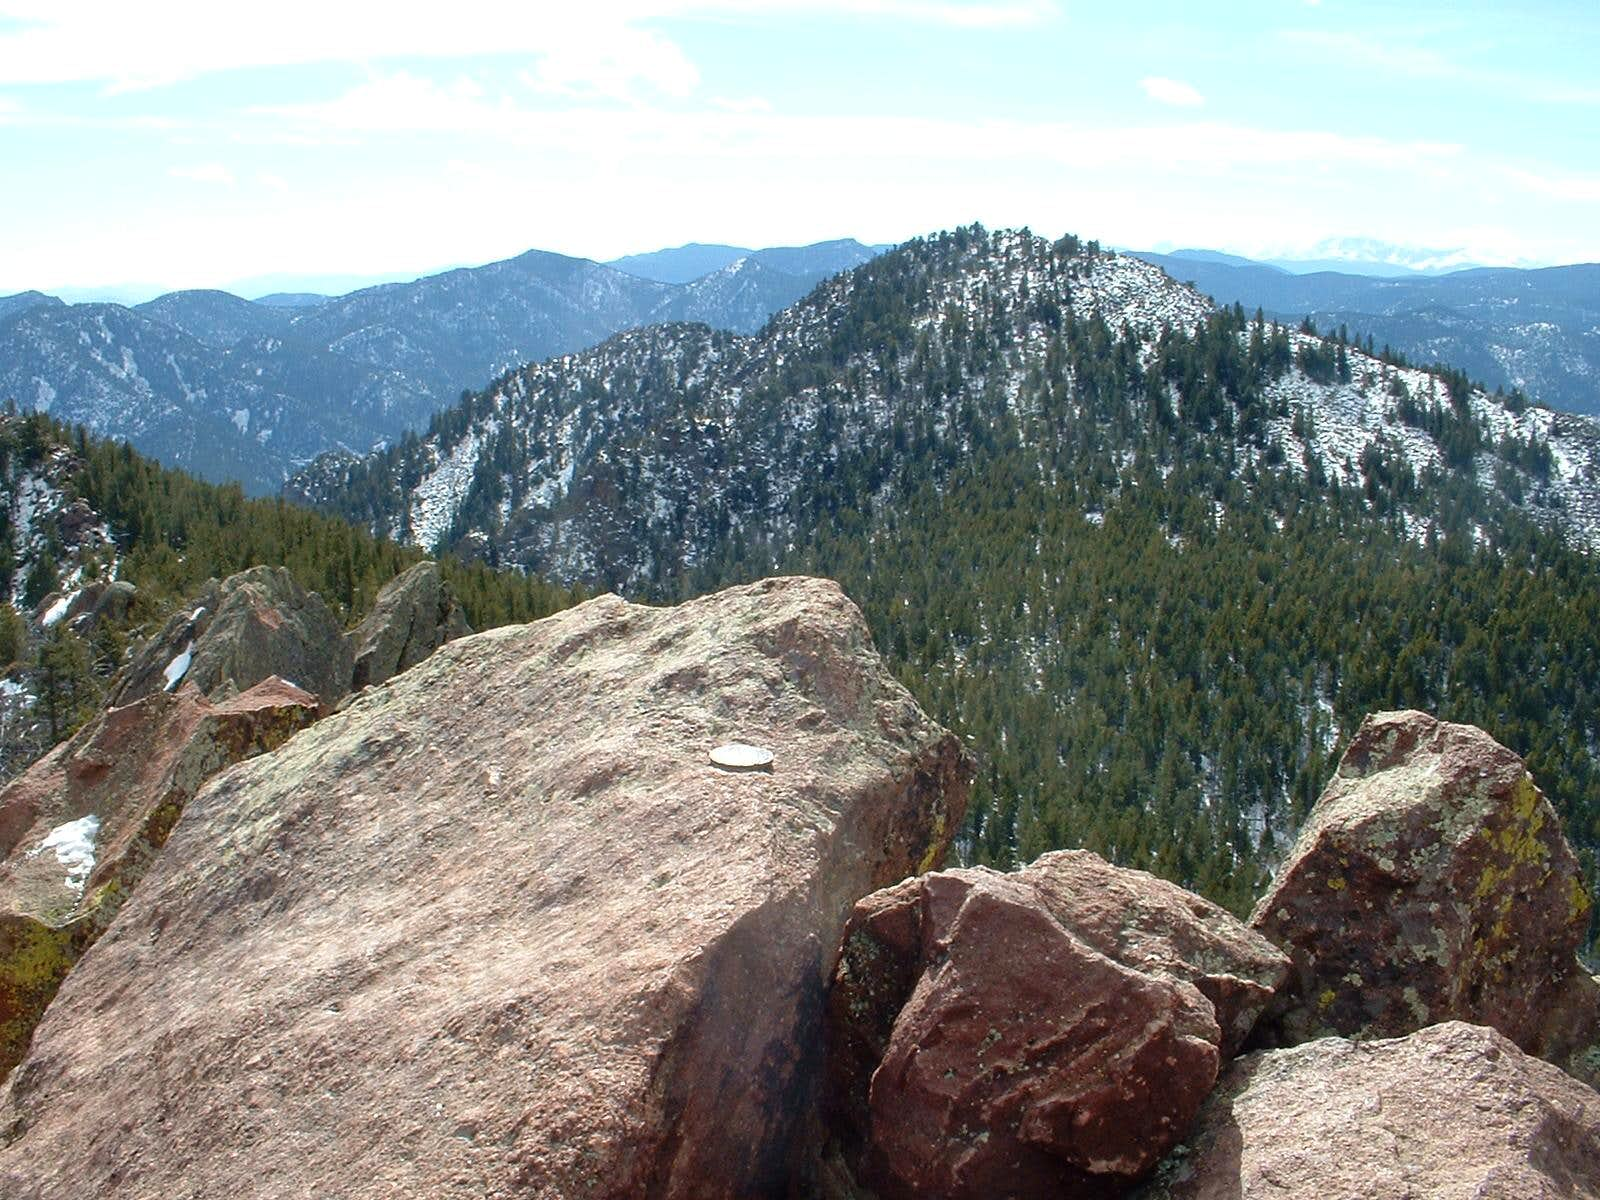 South Boulder Peak and Bear Peak